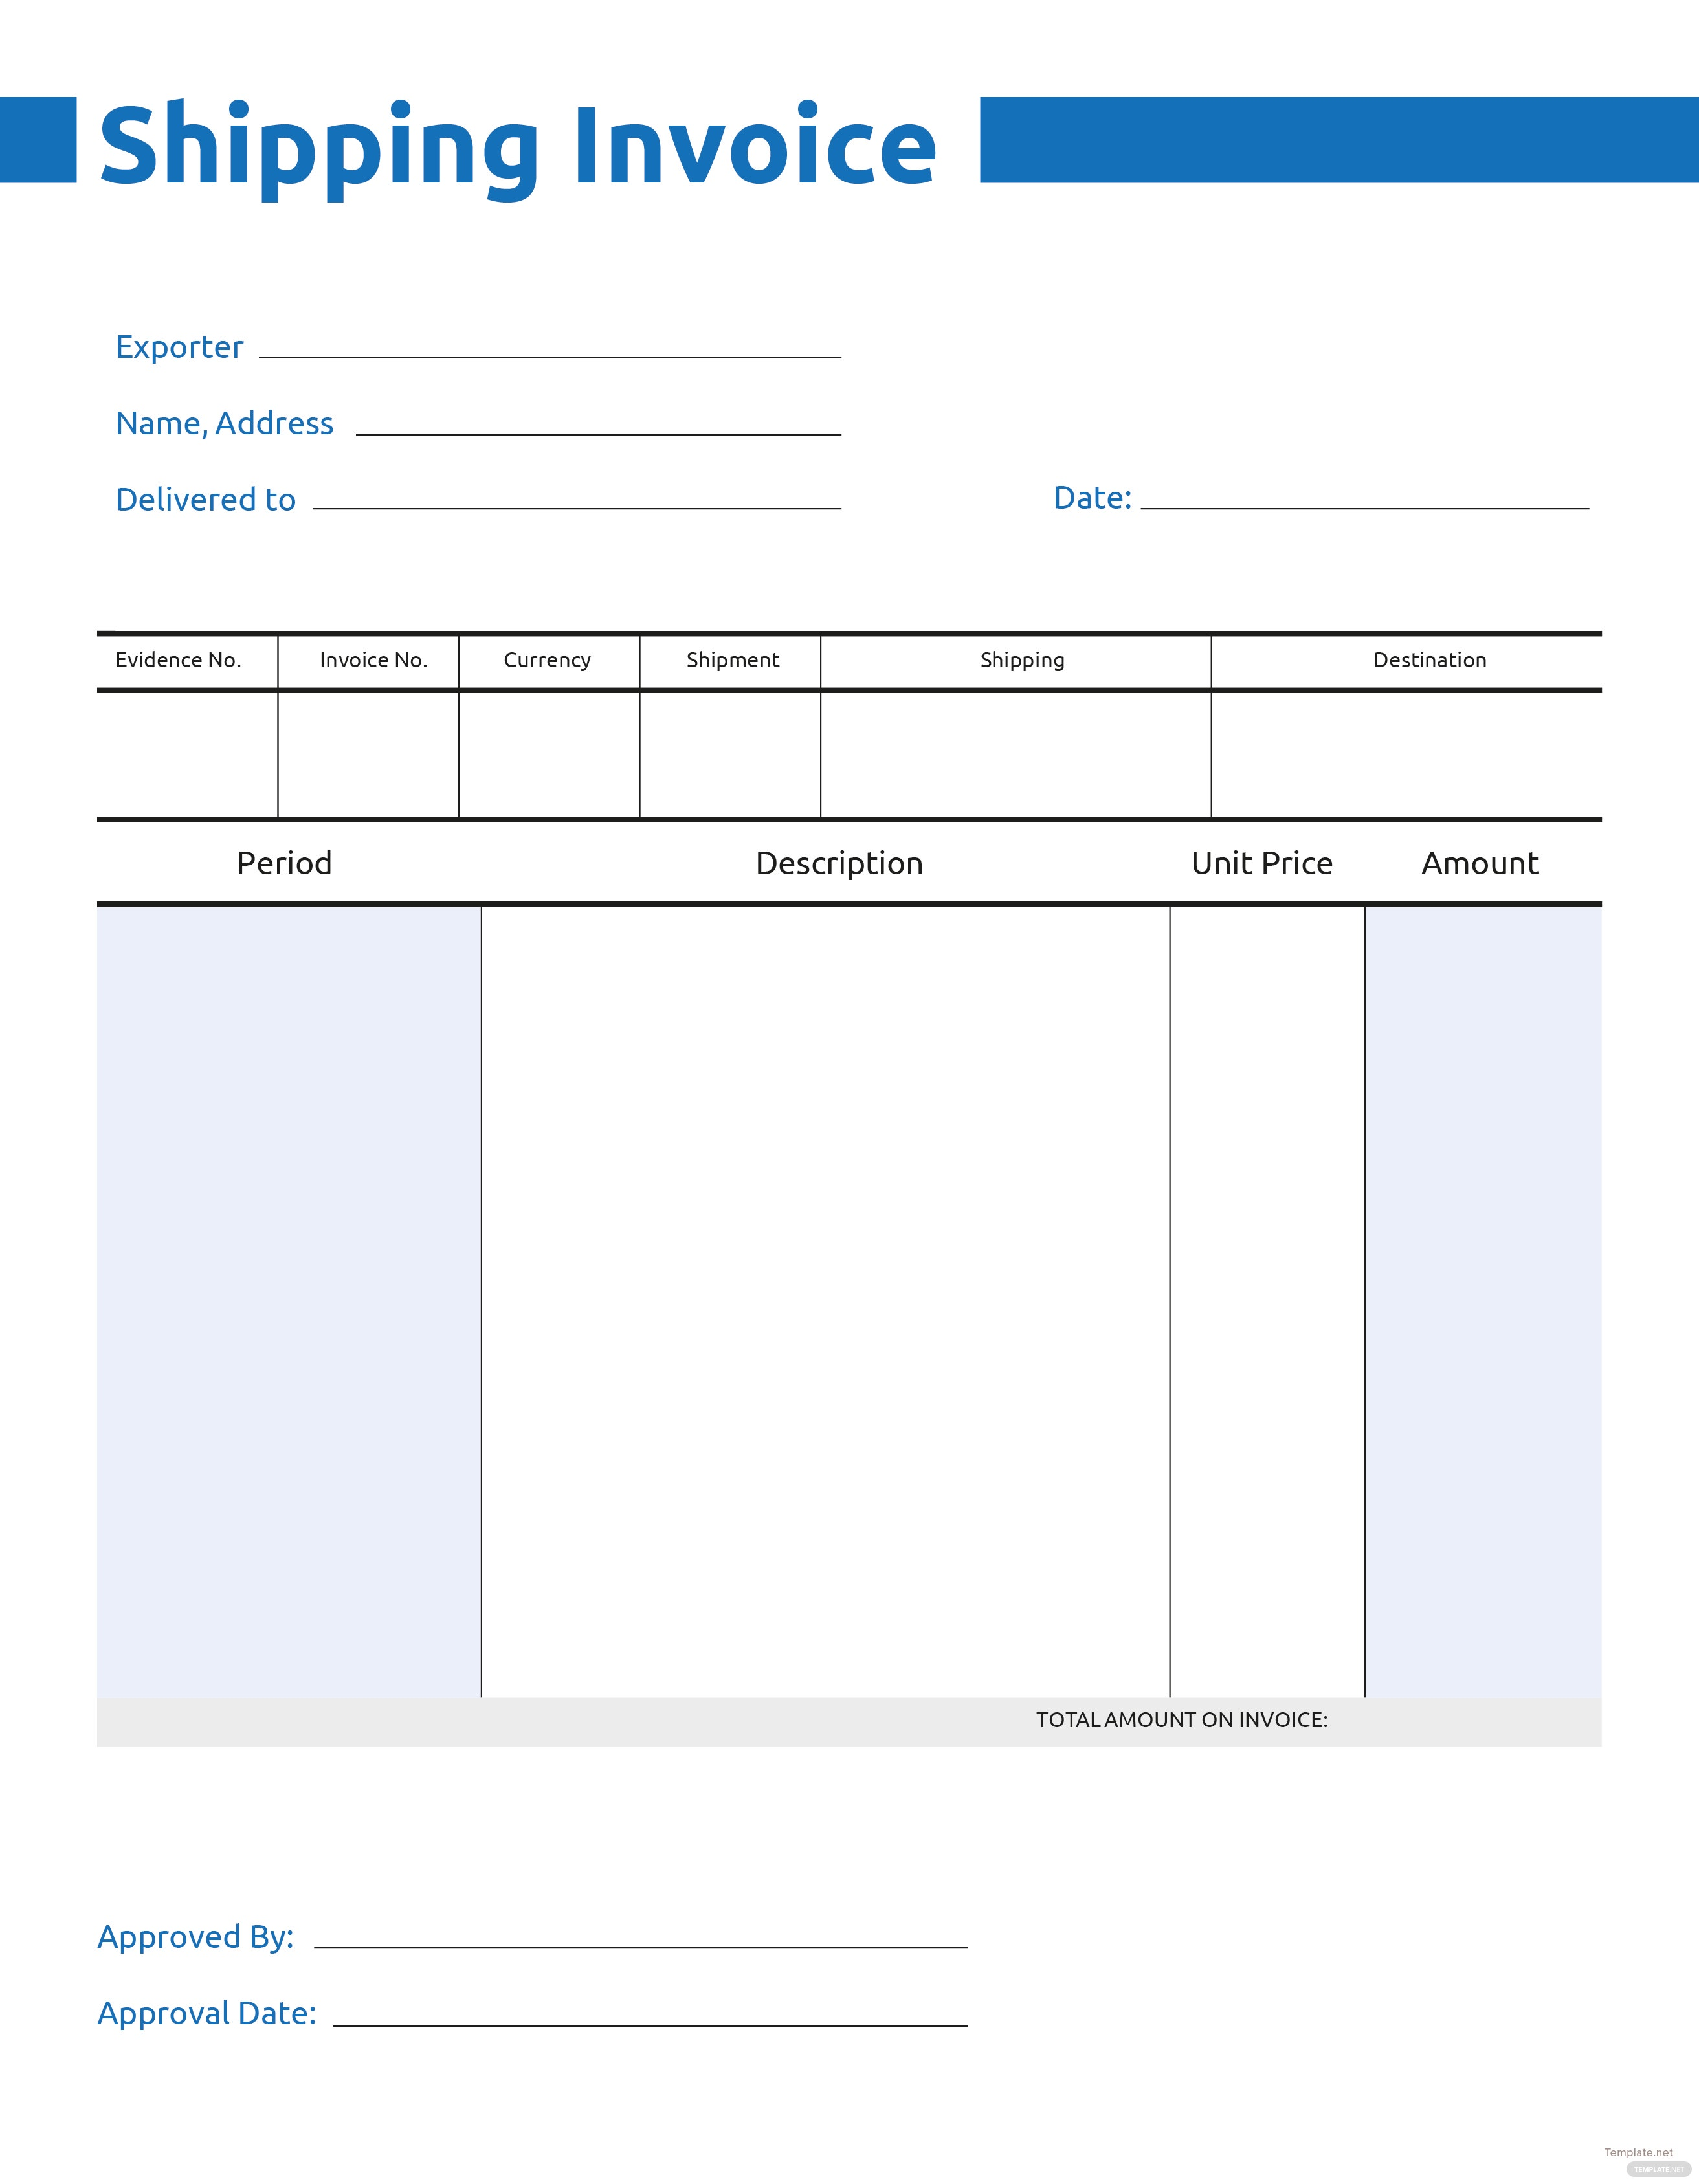 Free Commercial Shipping Invoice Template In Adobe Illustrator - Free invoice template : shipping invoice template